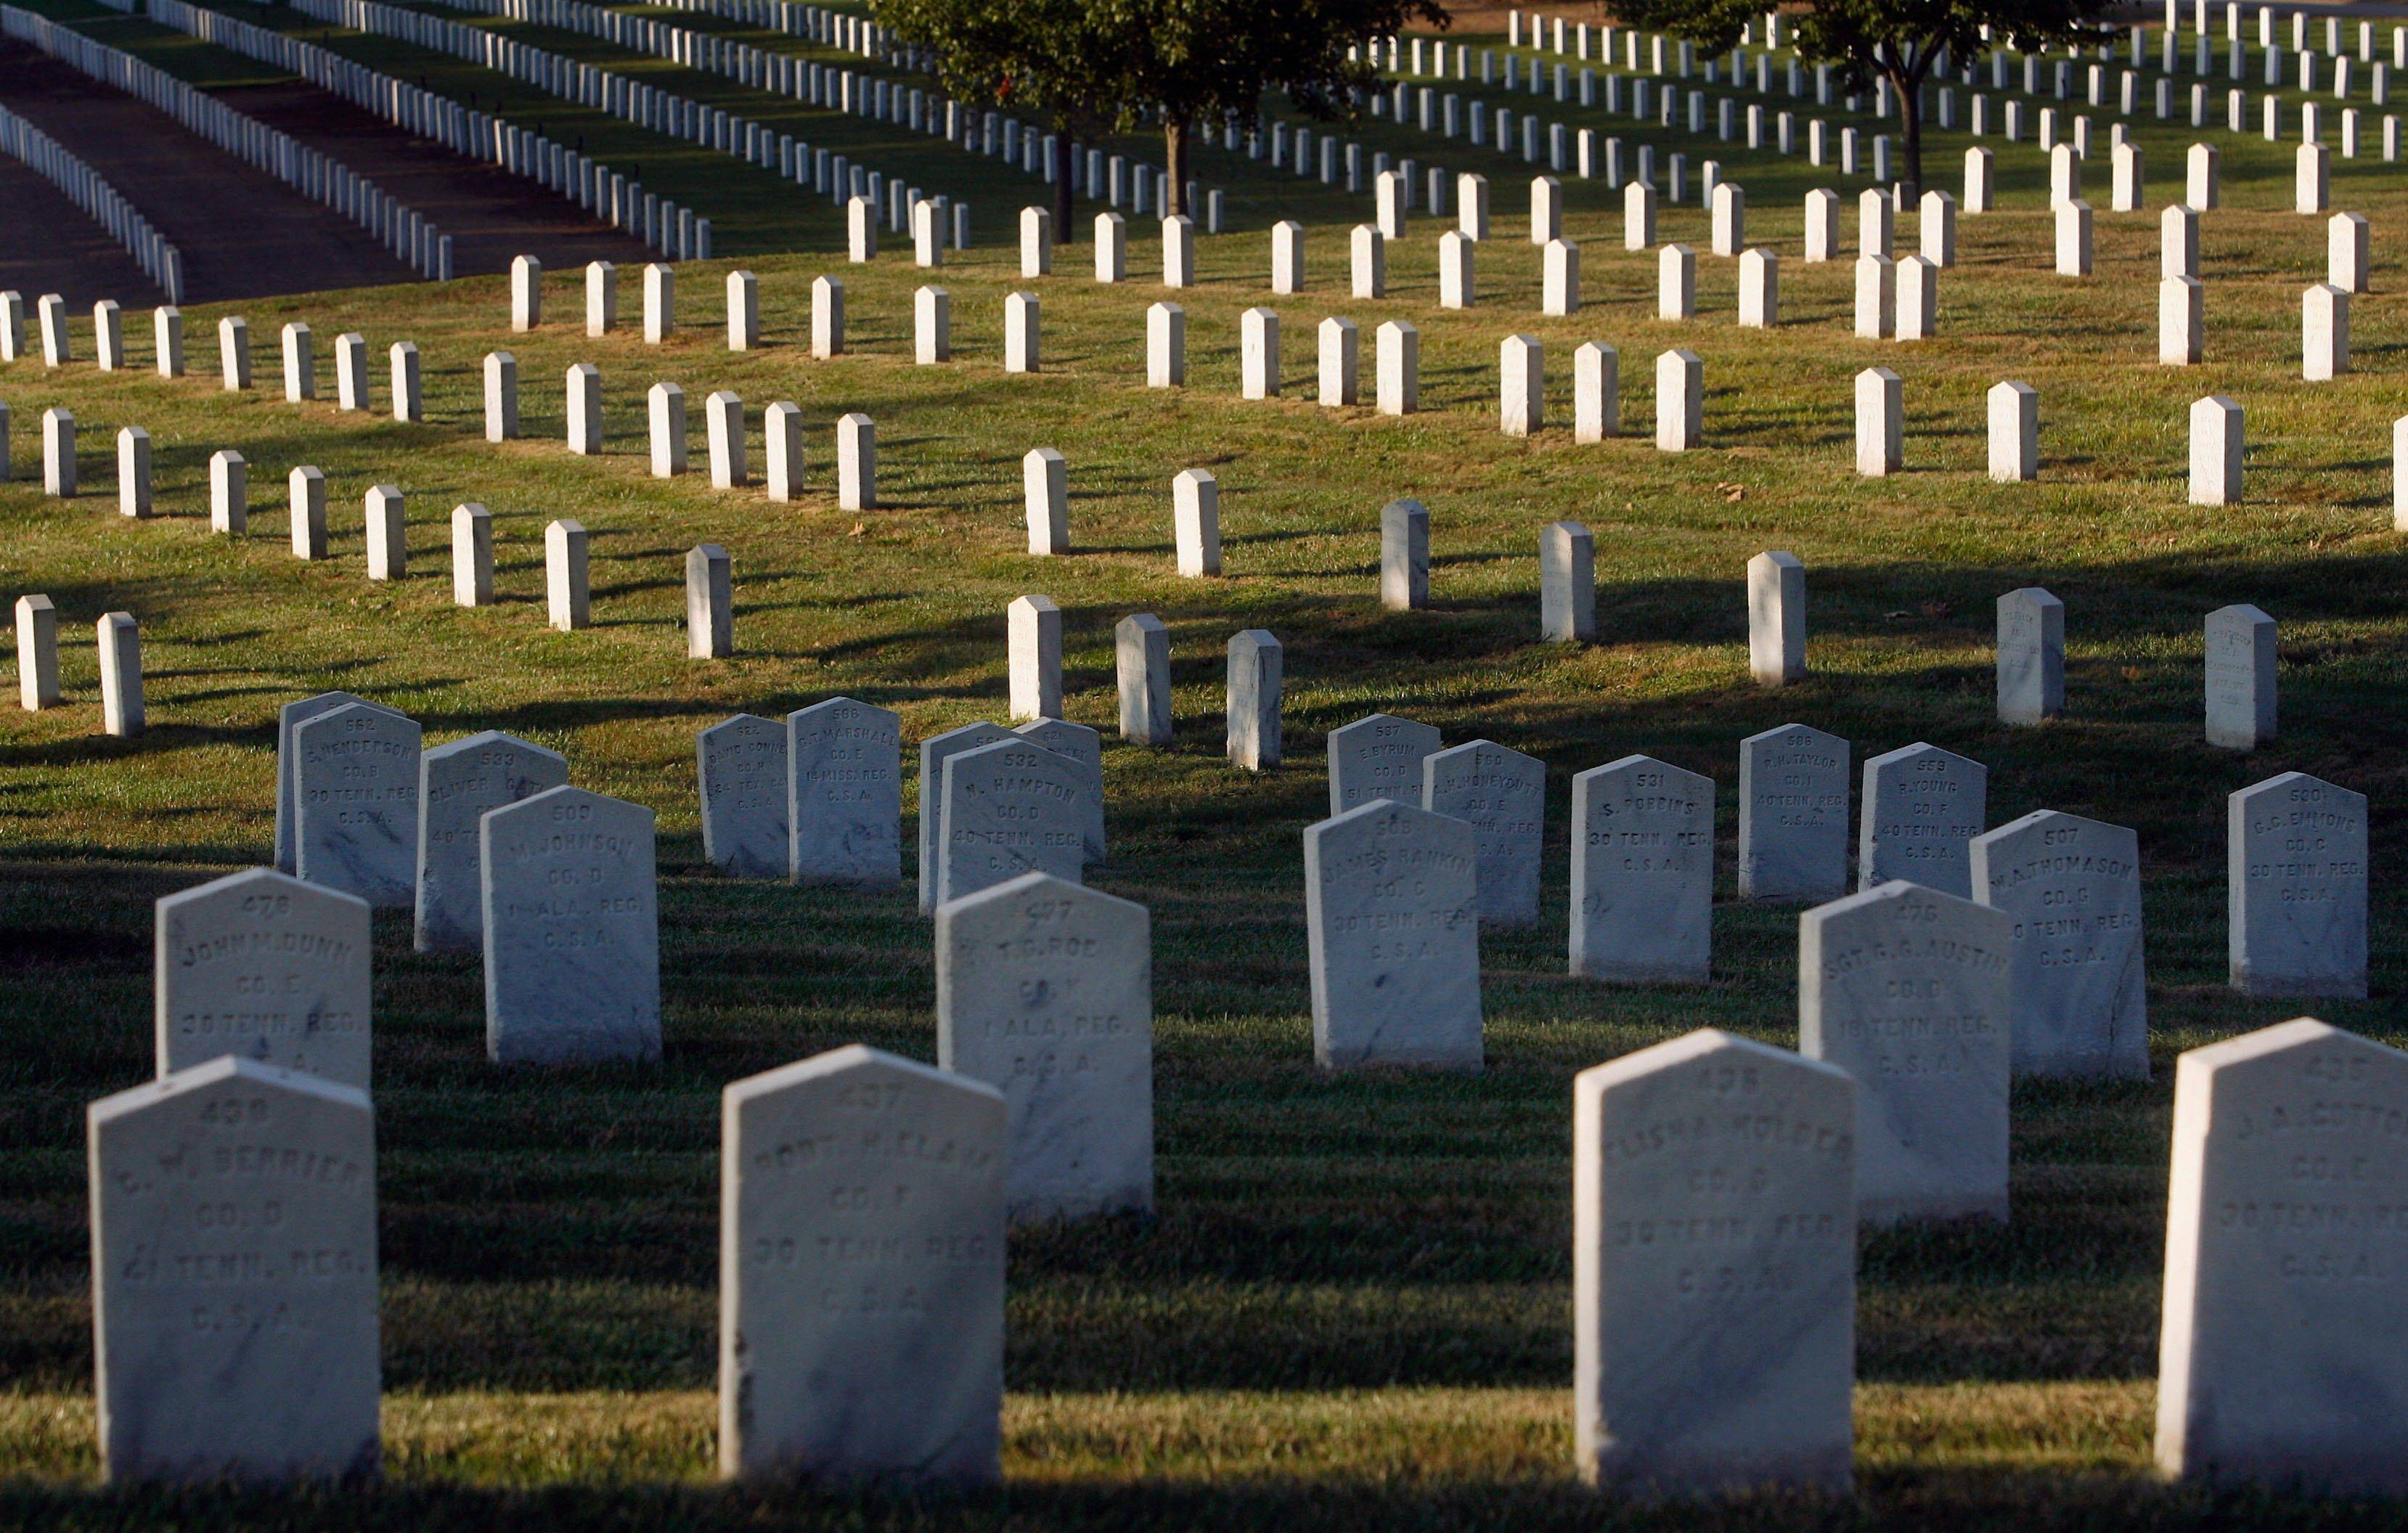 Confederate headstones can be seen in rows at Camp Butler National Cemetery in Springfield. There are 866 Confederate graves making up a separate section at Camp Butler, which was created in 1862 as one of the first national cemeteries.